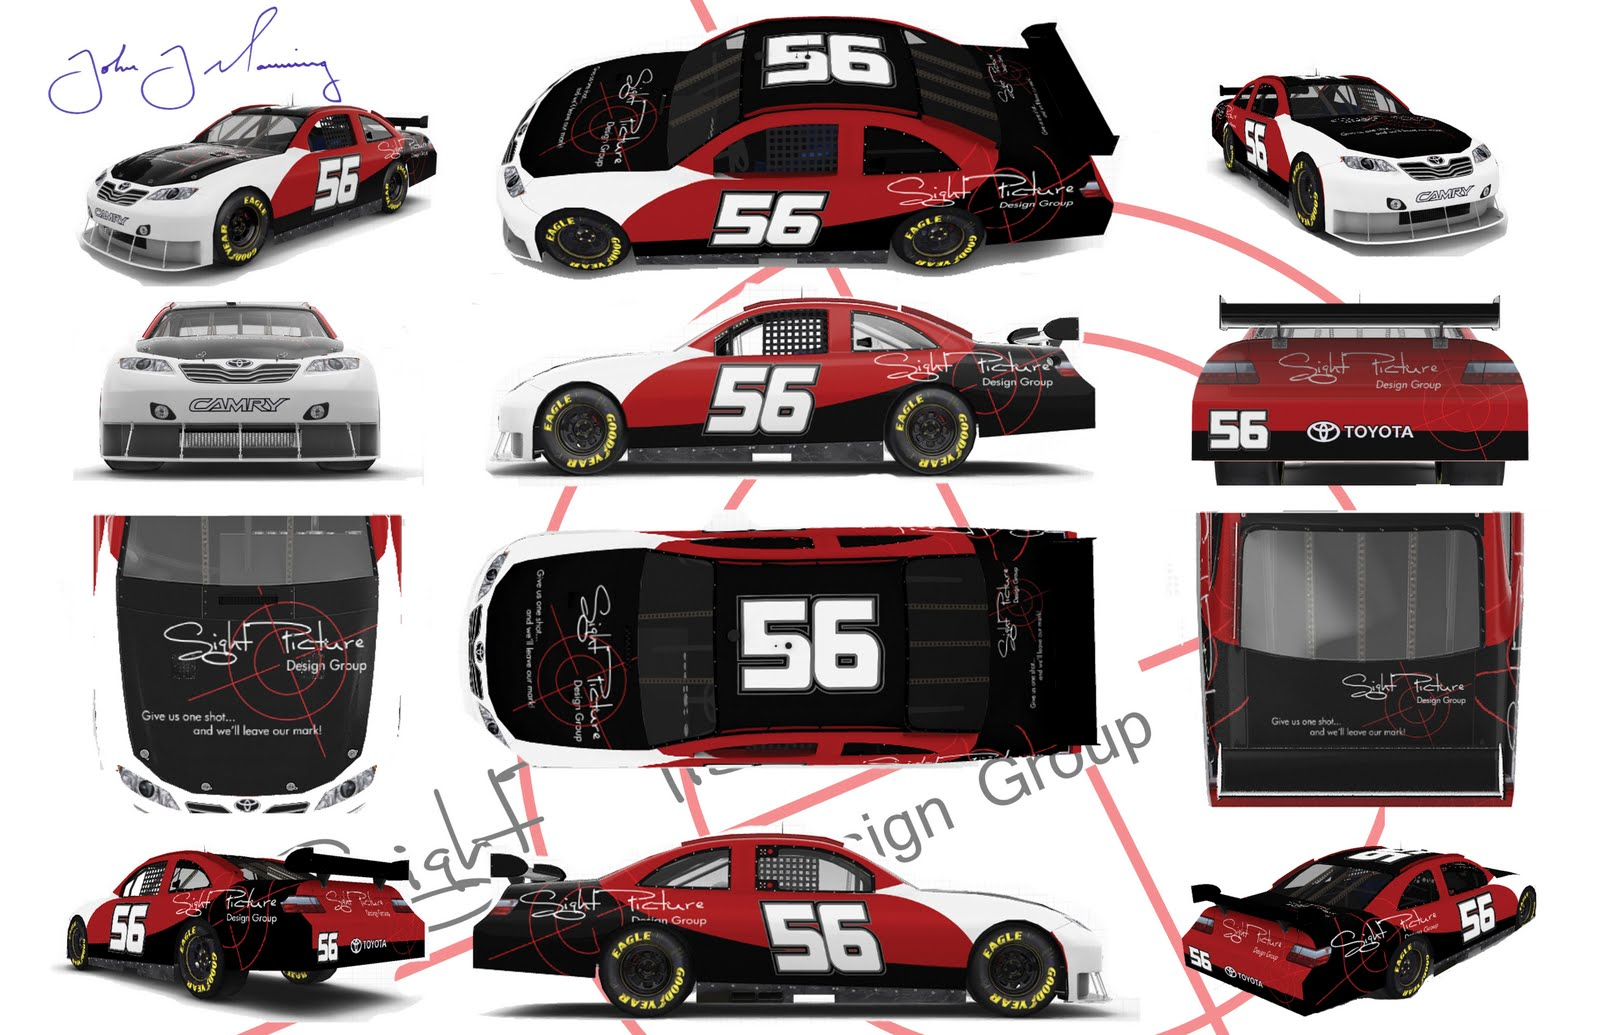 Design car contest -  Was Something I Heard About When Watching A Nascar Race One March Day In 2010 For Fun I Thought I Would Design A Car For The Toyota Sponsifier Contest